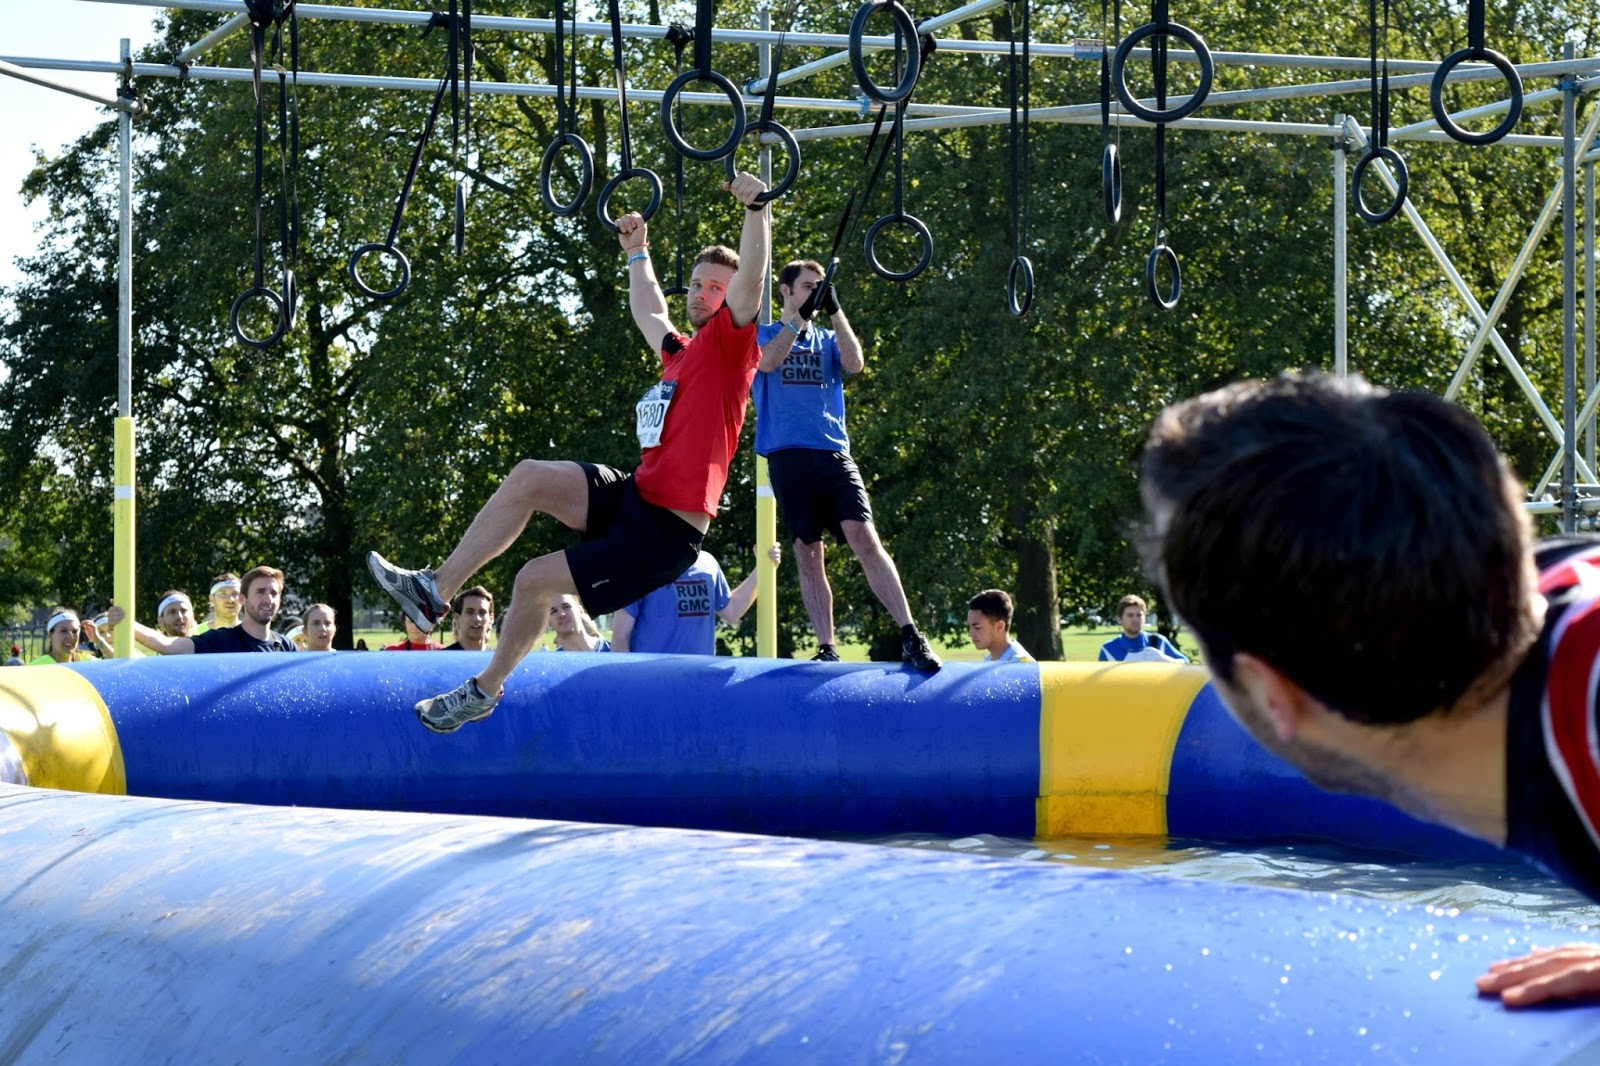 Rough Runner London obstacle course